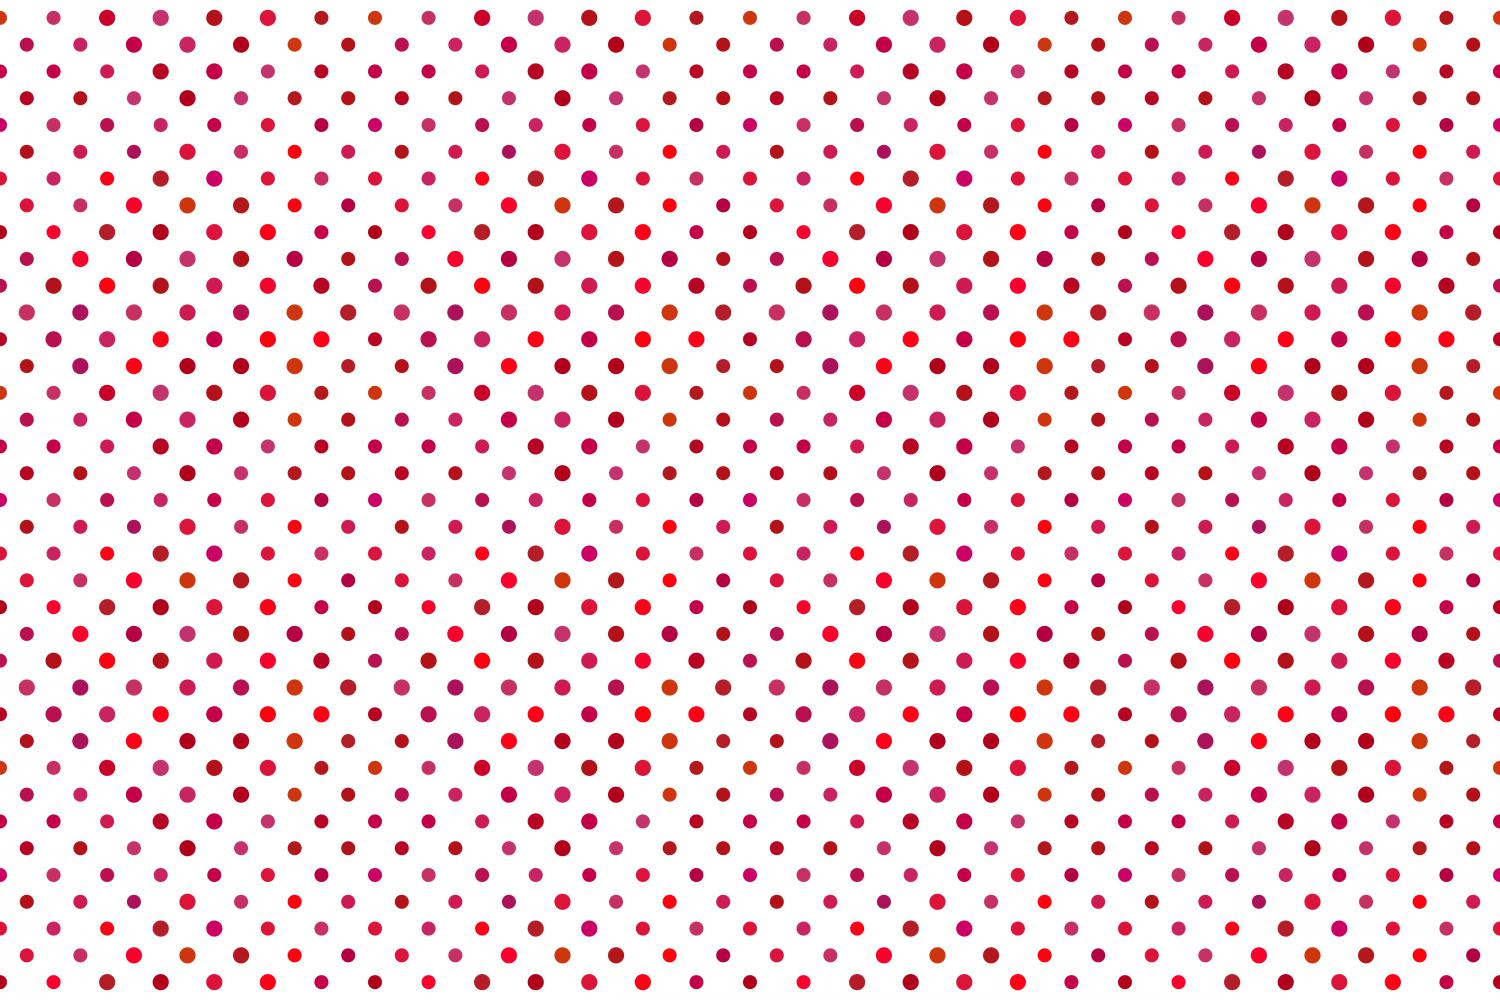 24 Seamless Red Dot Patterns example image 7